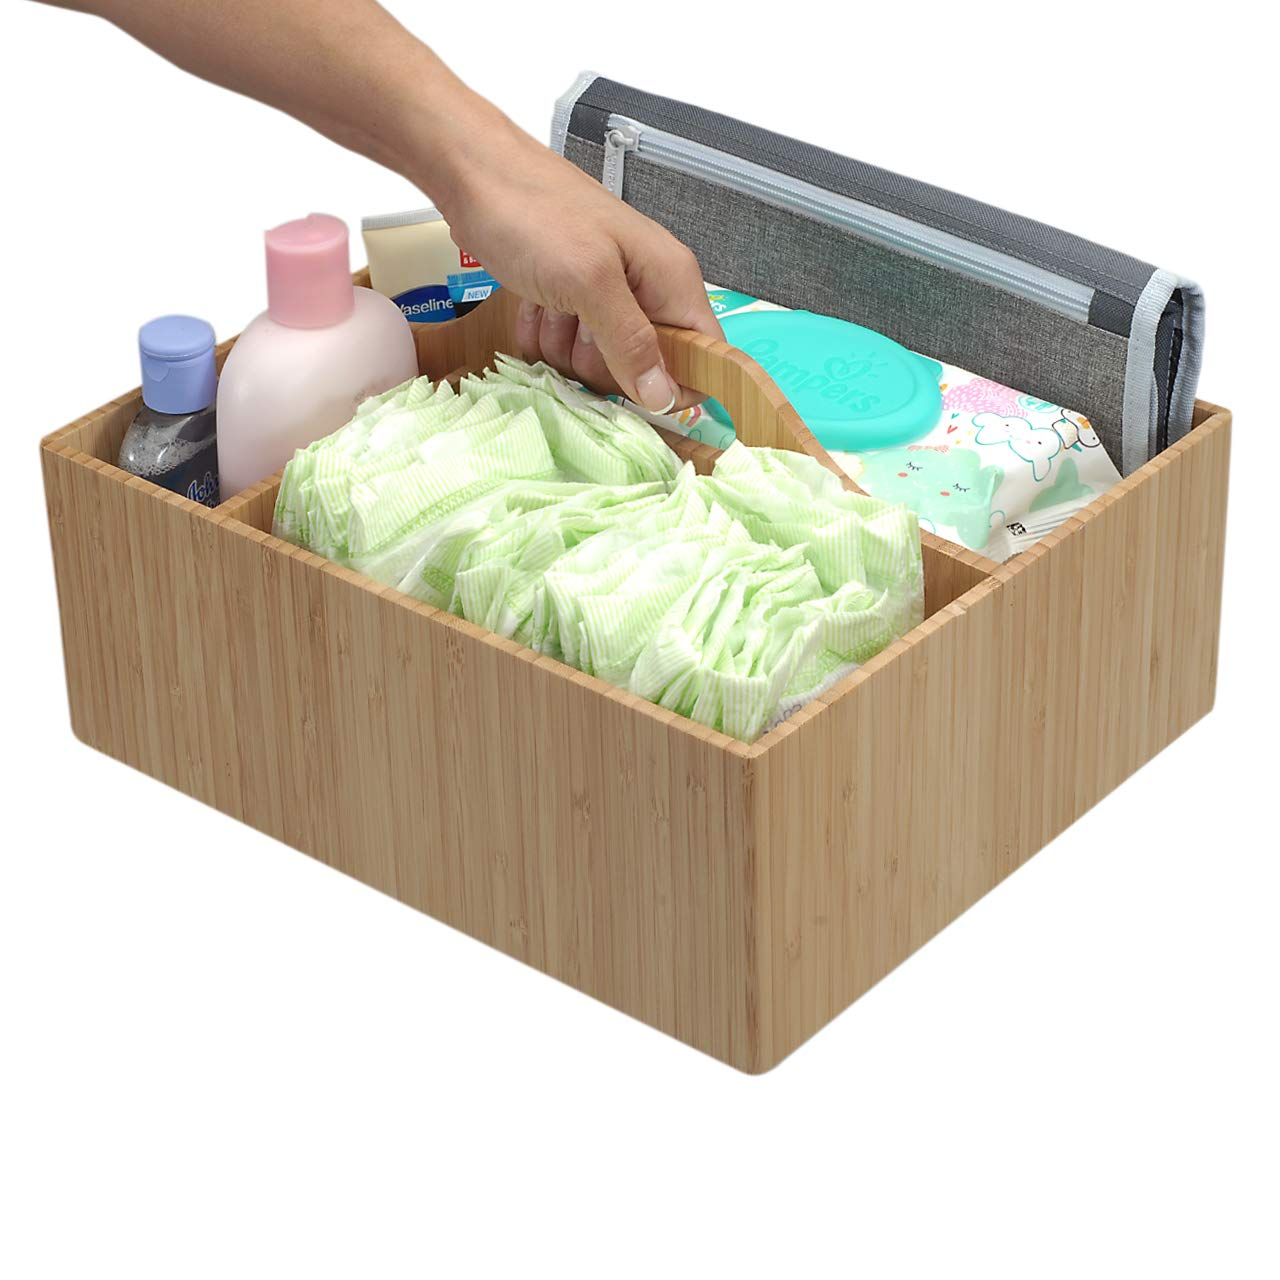 MobileVision Bamboo Diaper Caddy Organizer with Handle, 3 Sections, Portable Sturdy Carrier for Baby Changing Supplies, Diapers, Wipes, Creams and Other Essentials by MobileVision